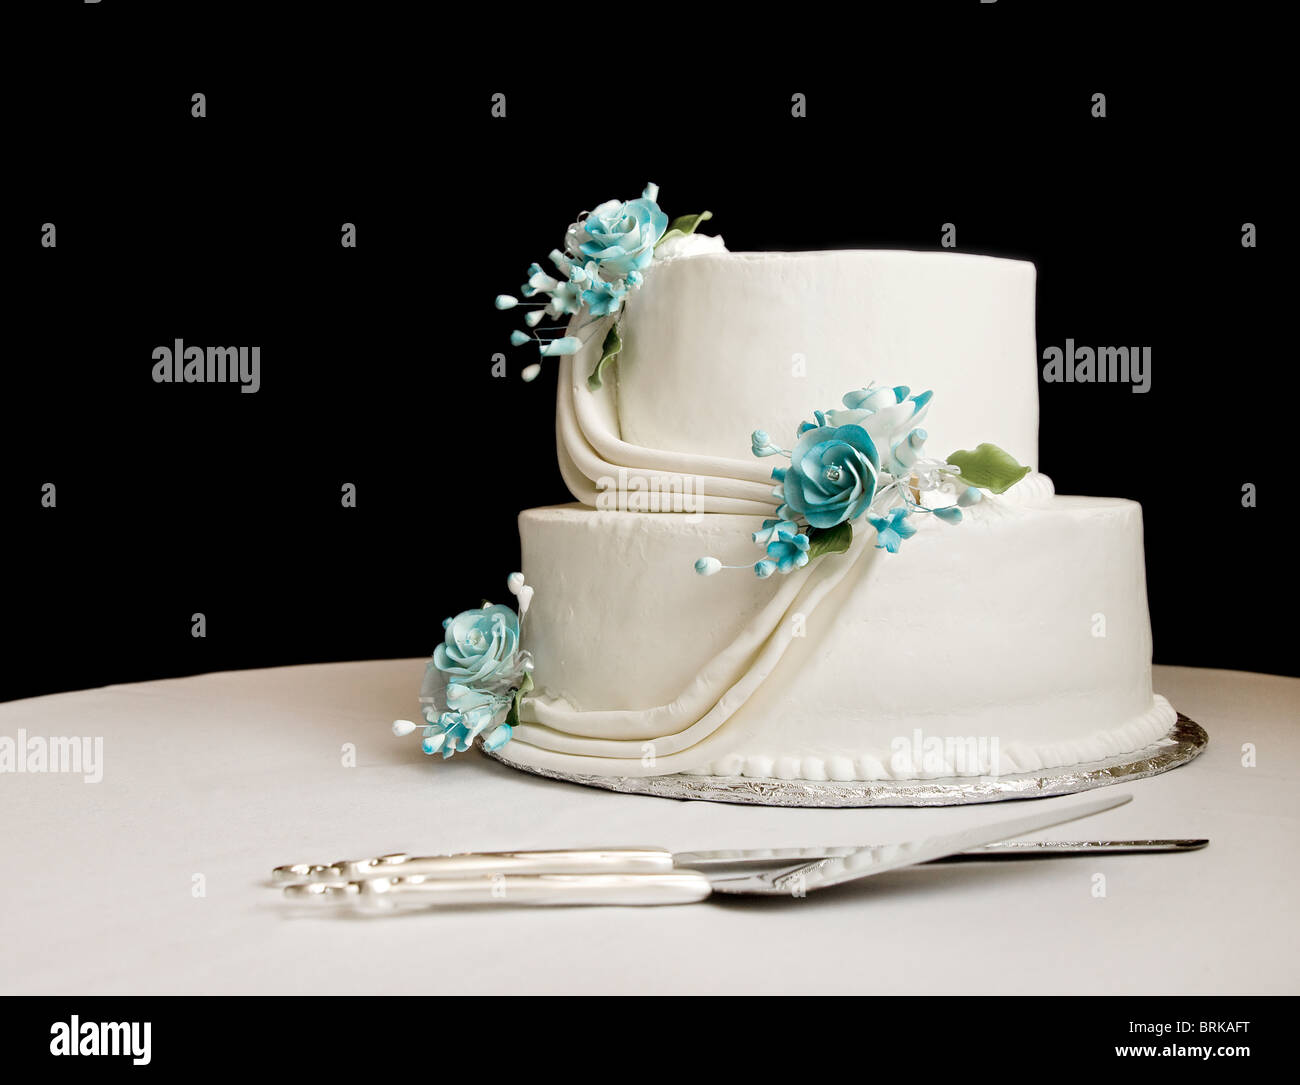 White wedding cake with blue flowers on a table with a black stock white wedding cake with blue flowers on a table with a black background izmirmasajfo